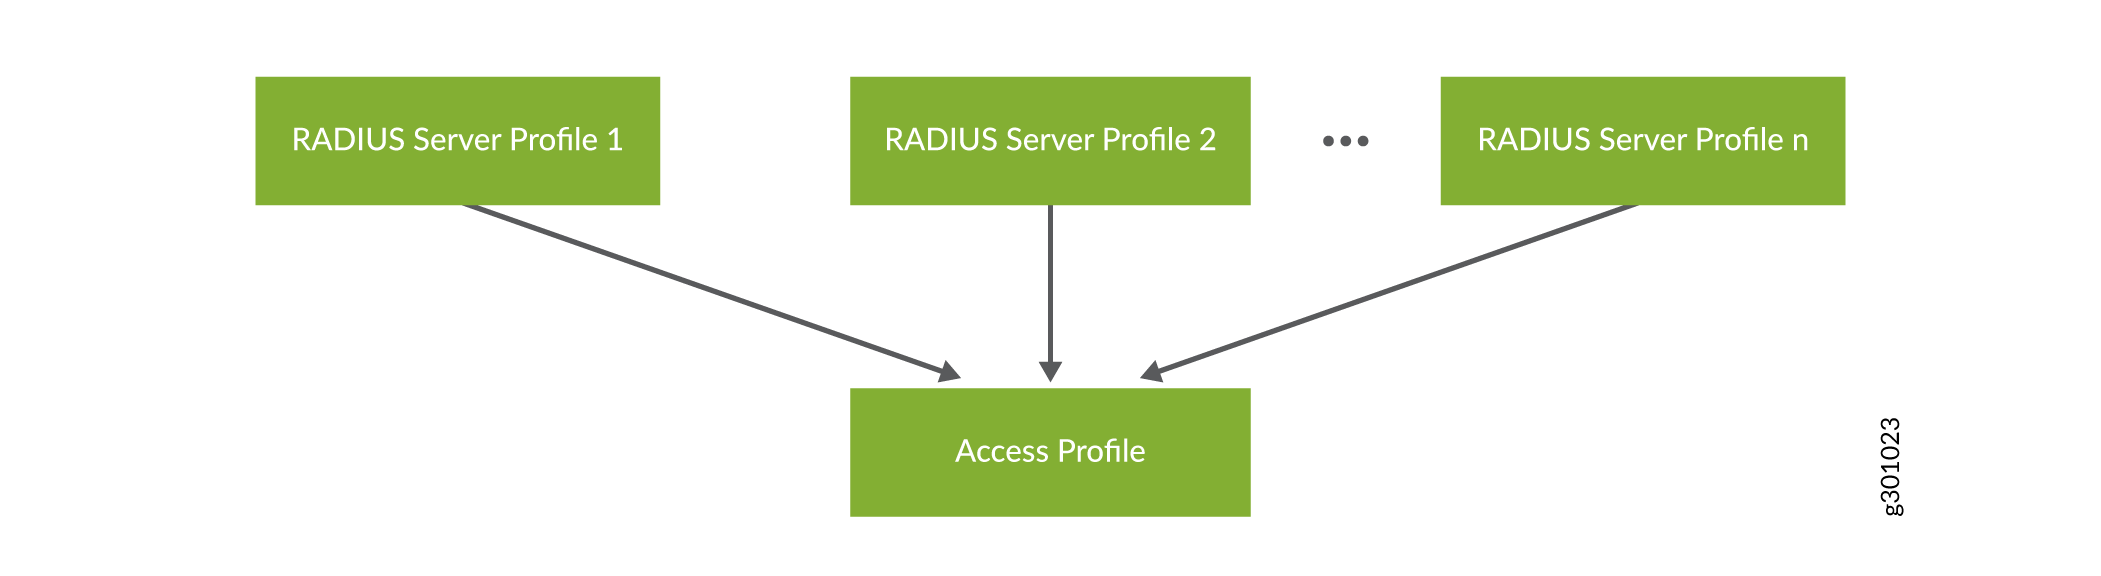 Relationship Between RADIUS Profiles and an Access Profile